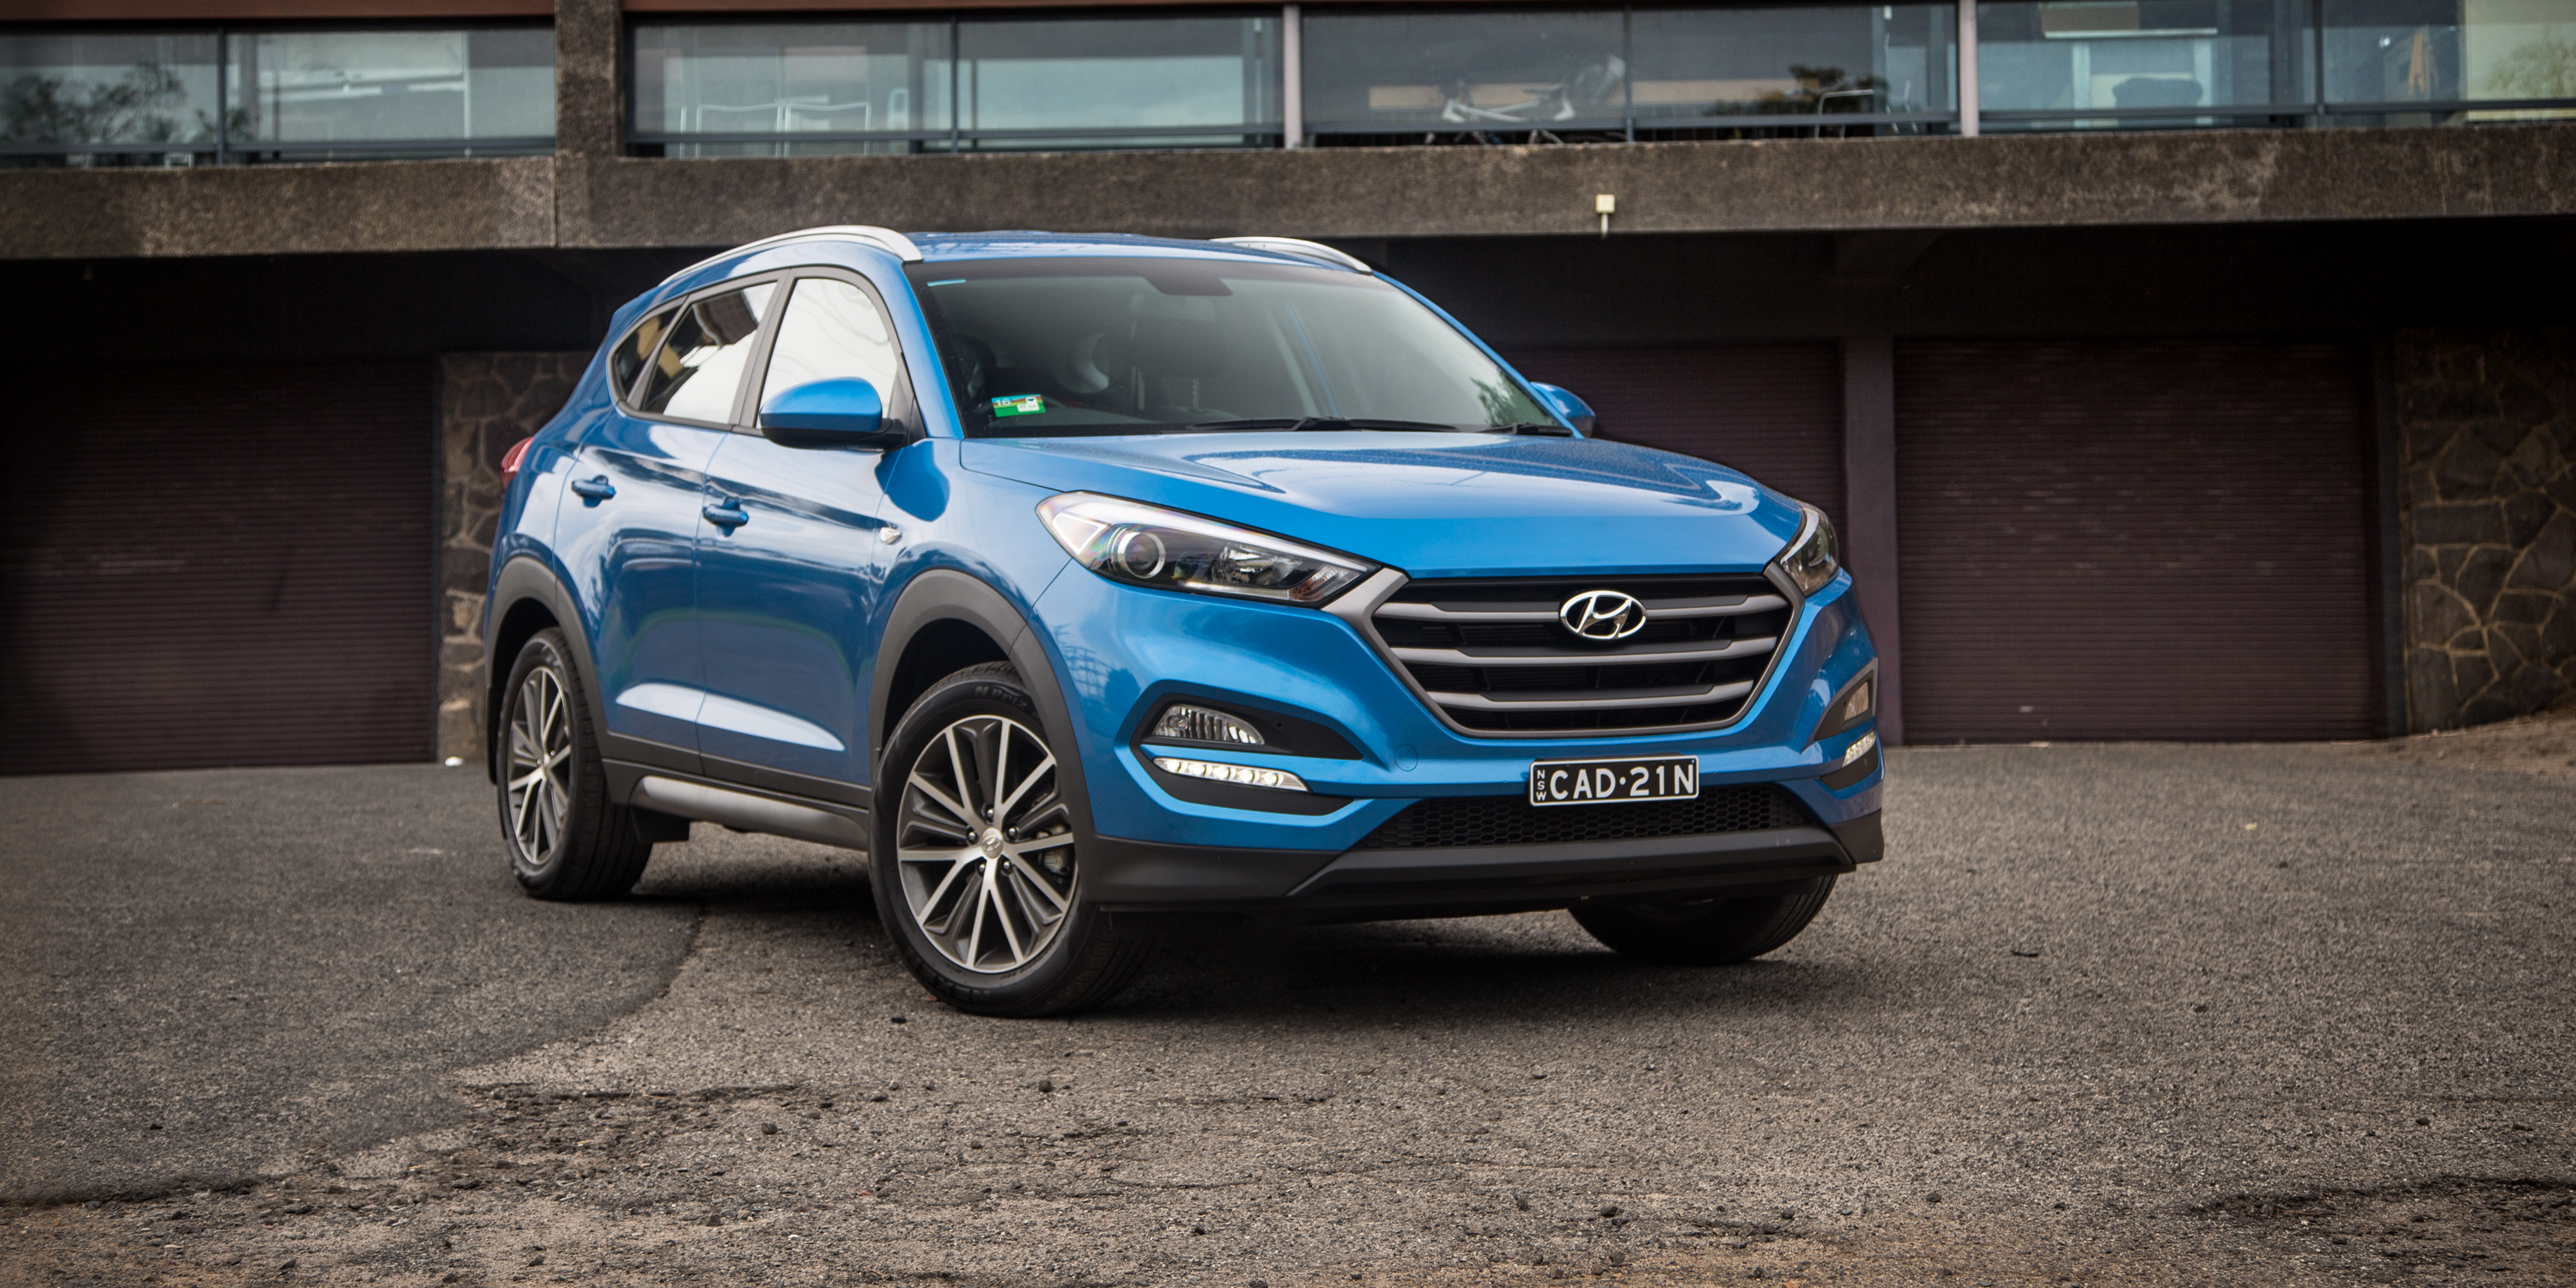 2016 Hyundai Tucson Active X Review: Long-term report two ...